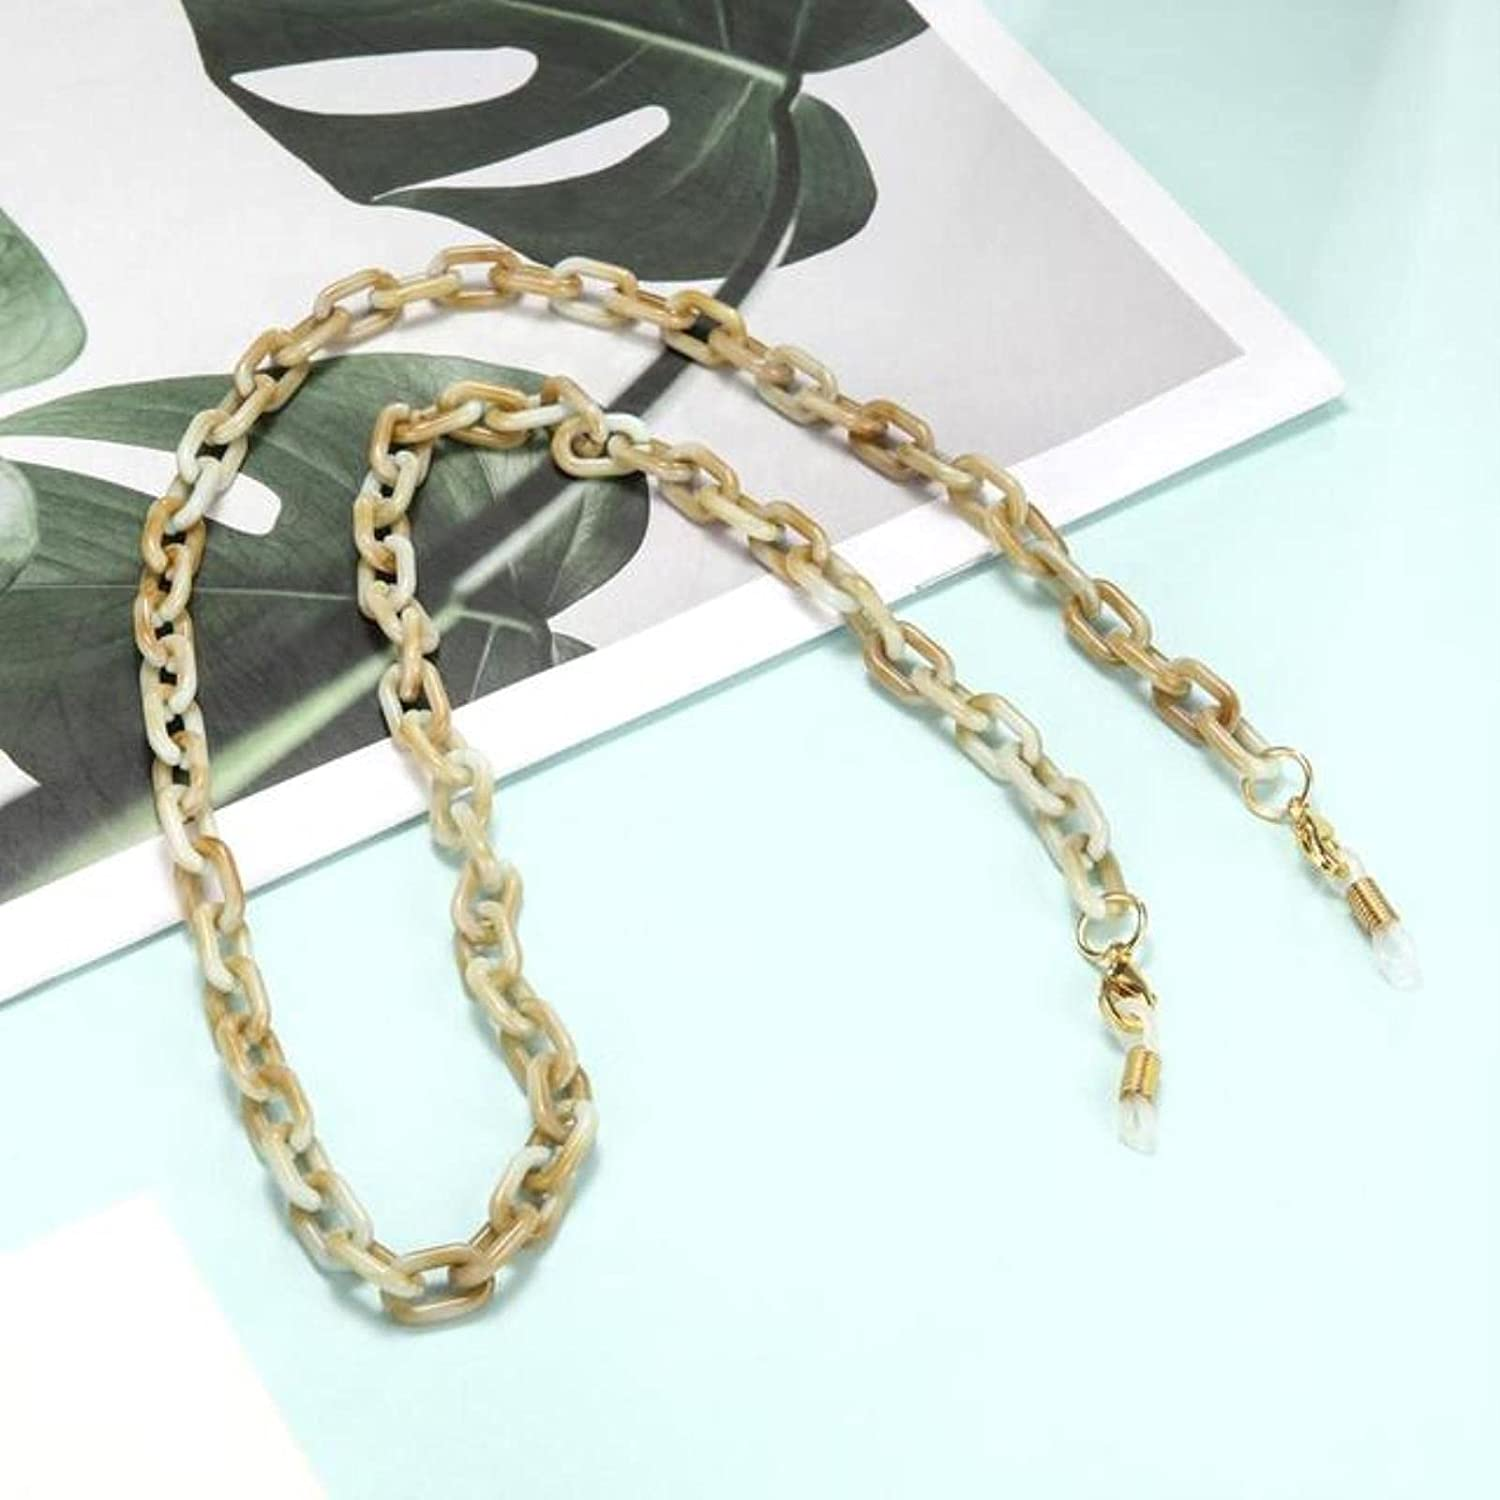 Wsnld Acrylic Chain for Necklace Glasses Chain Sunglasses Straps Lanyards Women Men Neck Chains Holder